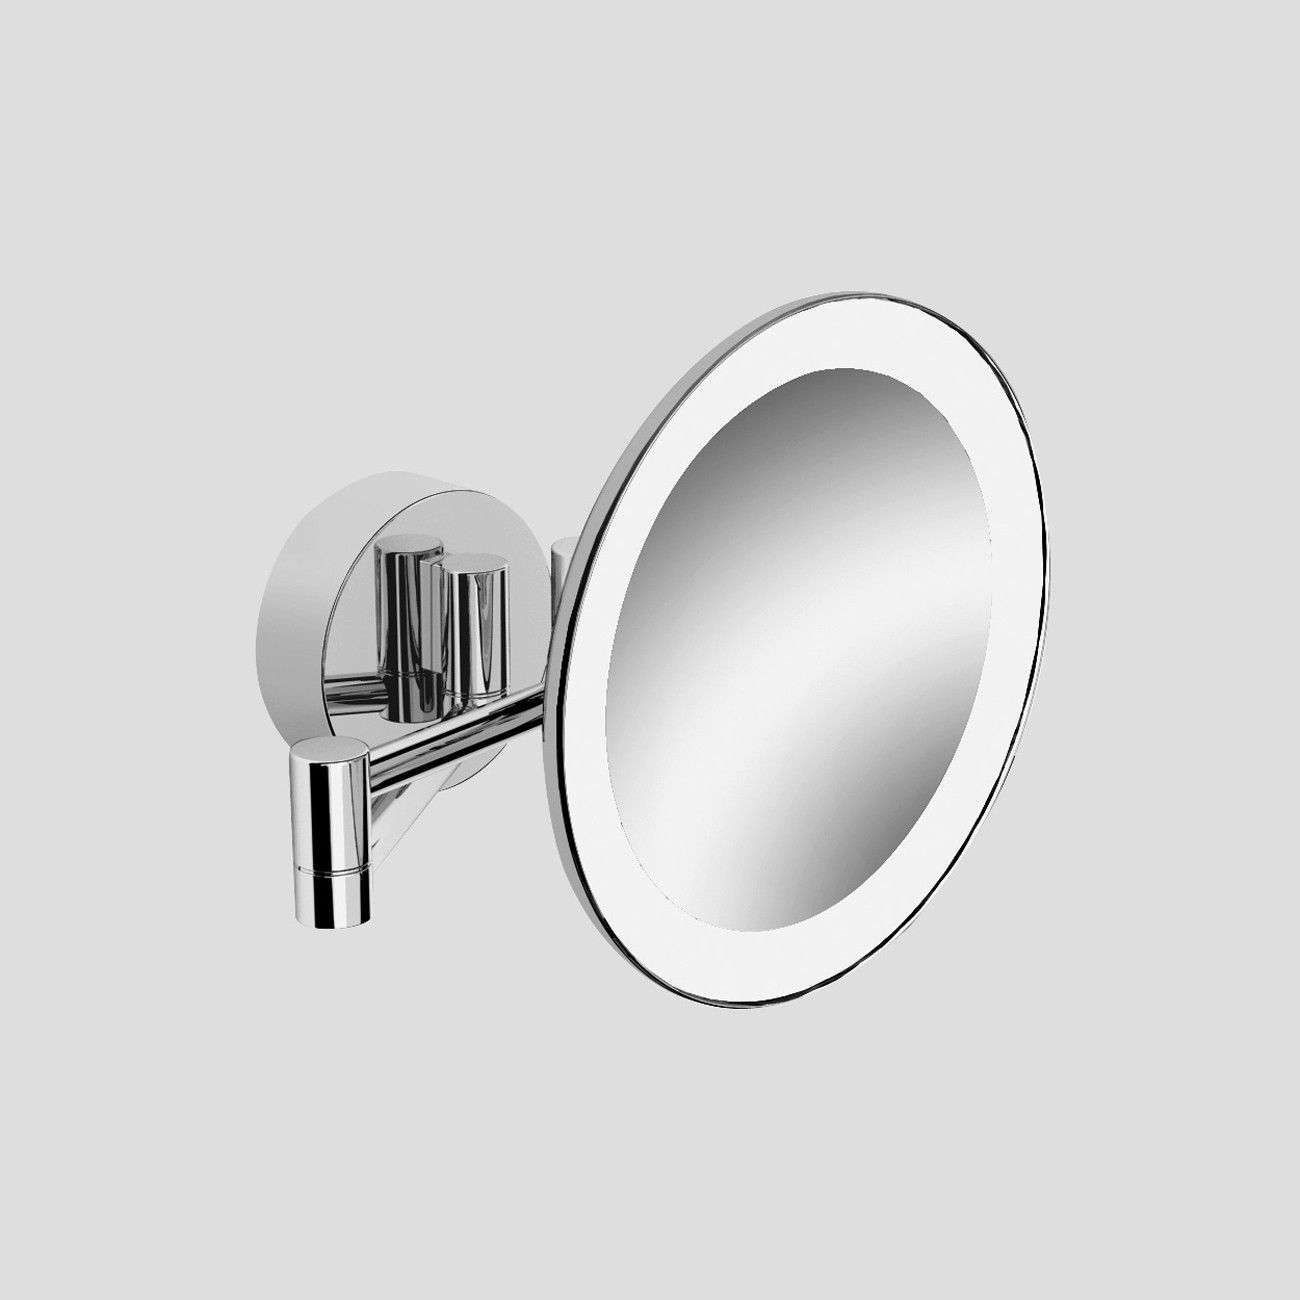 Wall mounted magnifying mirrors for bathrooms - 17 Best Images About Magnifying Mirrors On Pinterest Wall Mount Bathroom Lighting And Makeup Vanity Mirror